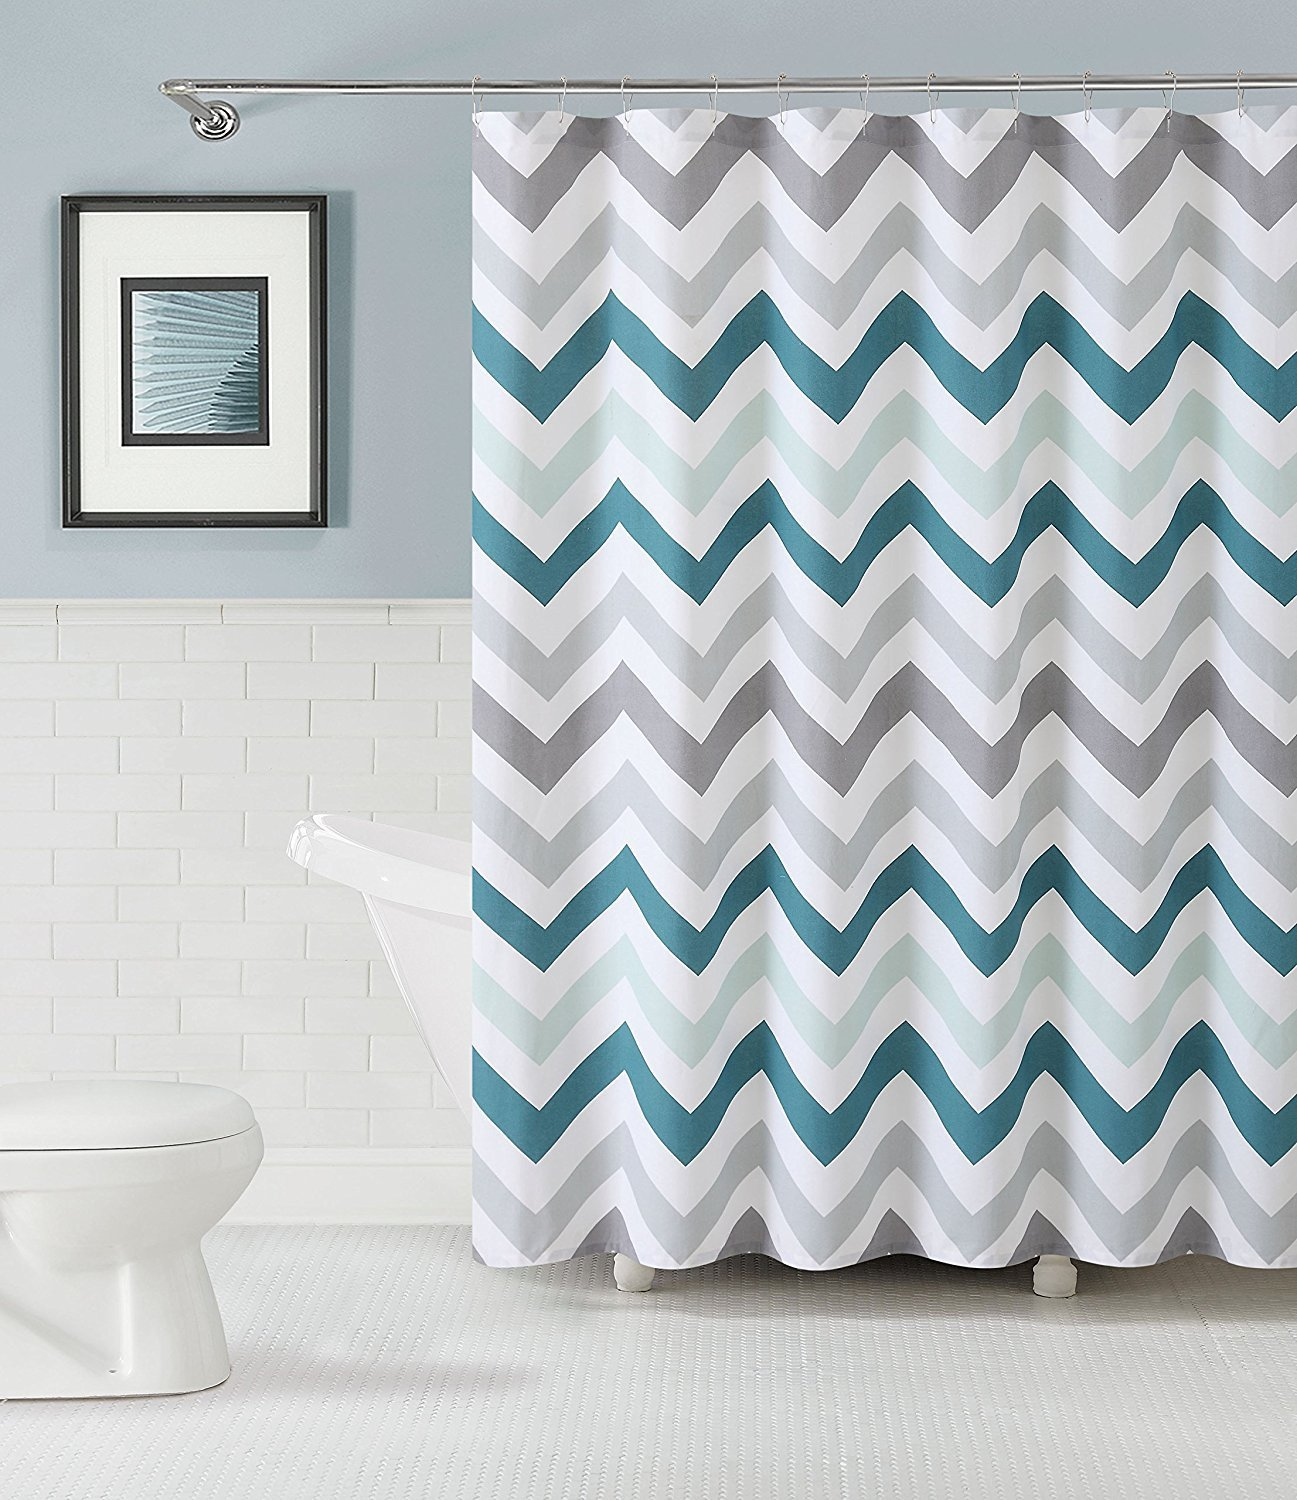 Aqua Chevron Shower Curtain - Memory home chevron cotton fabric shower curtain design pattern polyester fabric bathroom shower curtain with hooks